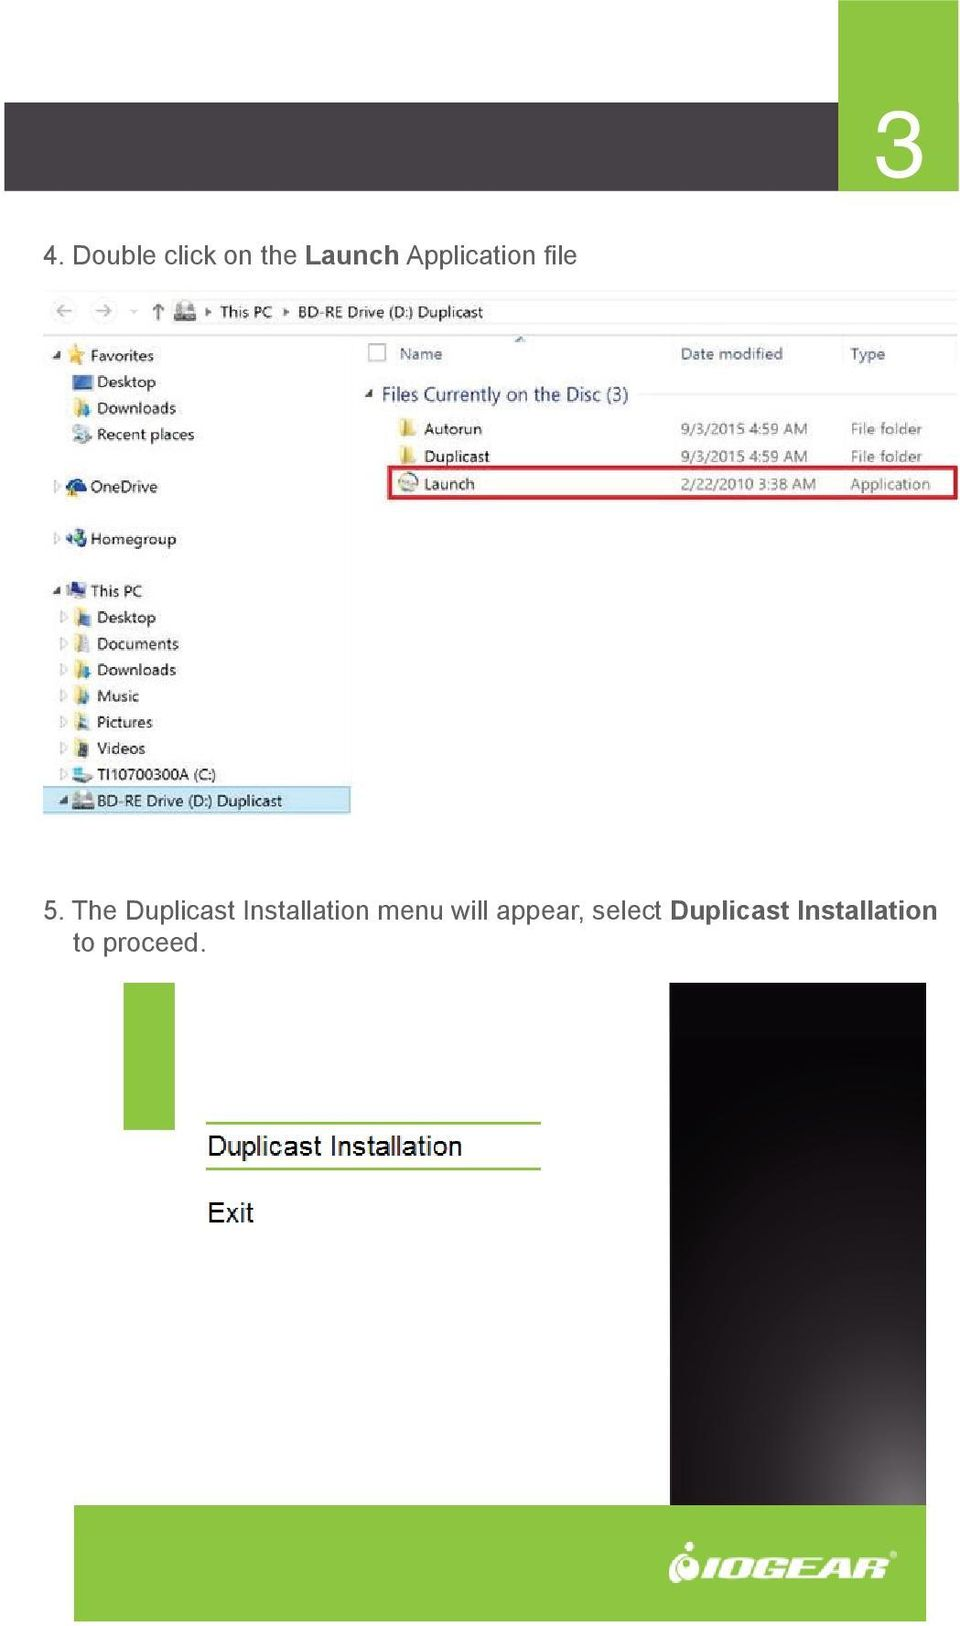 The Duplicast Installation menu